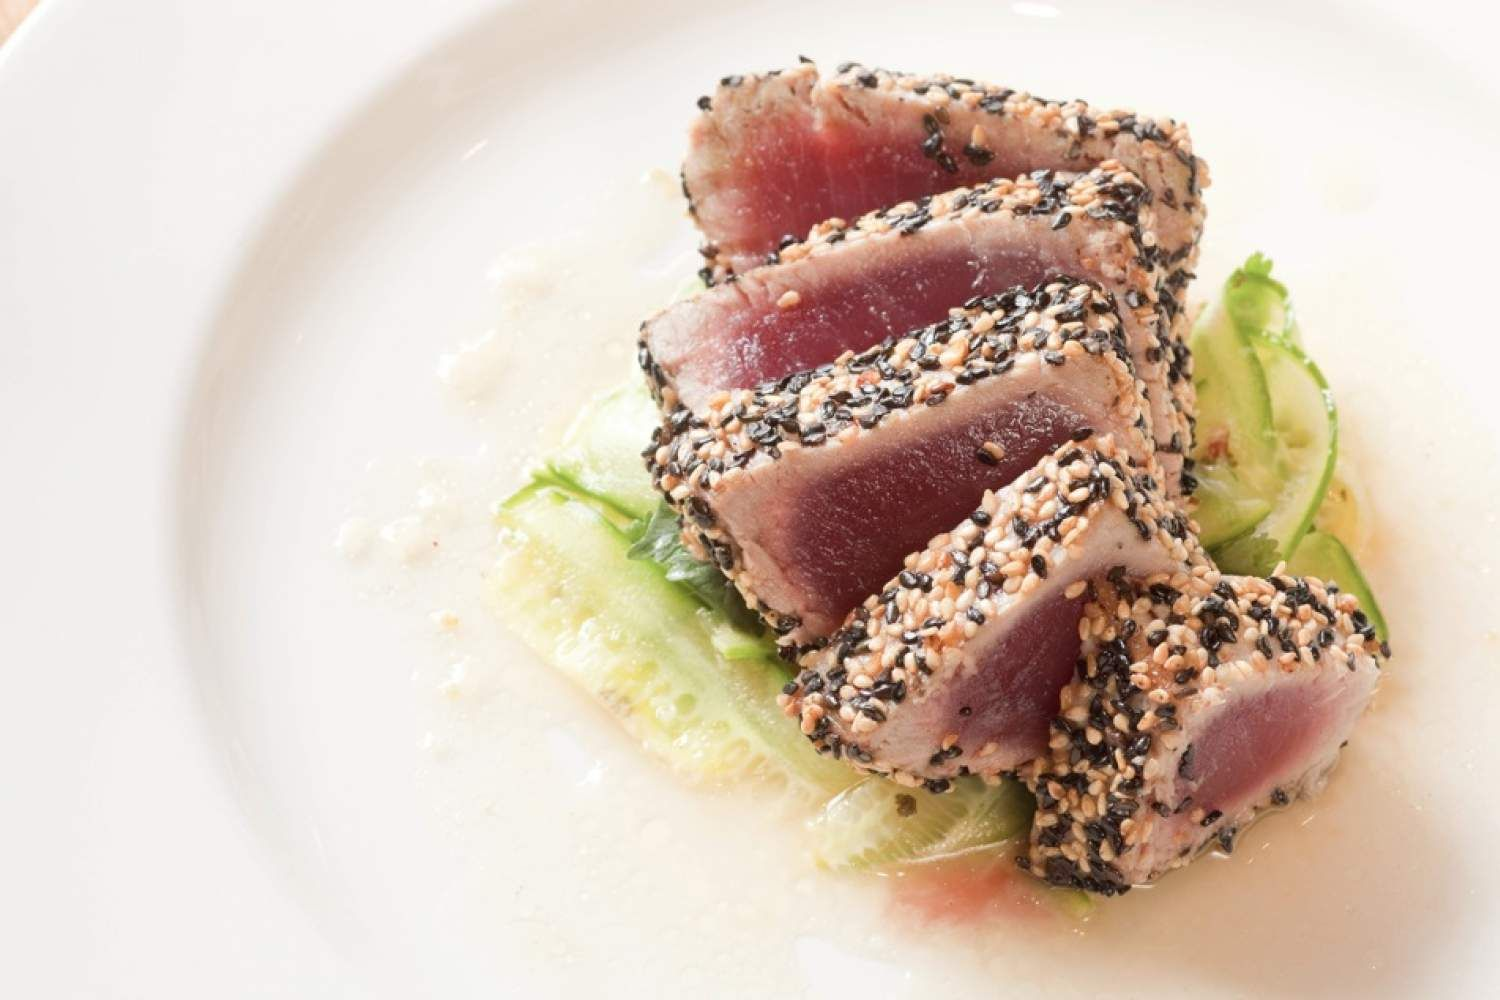 Sesame Crusted Tuna #healthyrecipes #slenderkitchen #dinner #quickandeasy